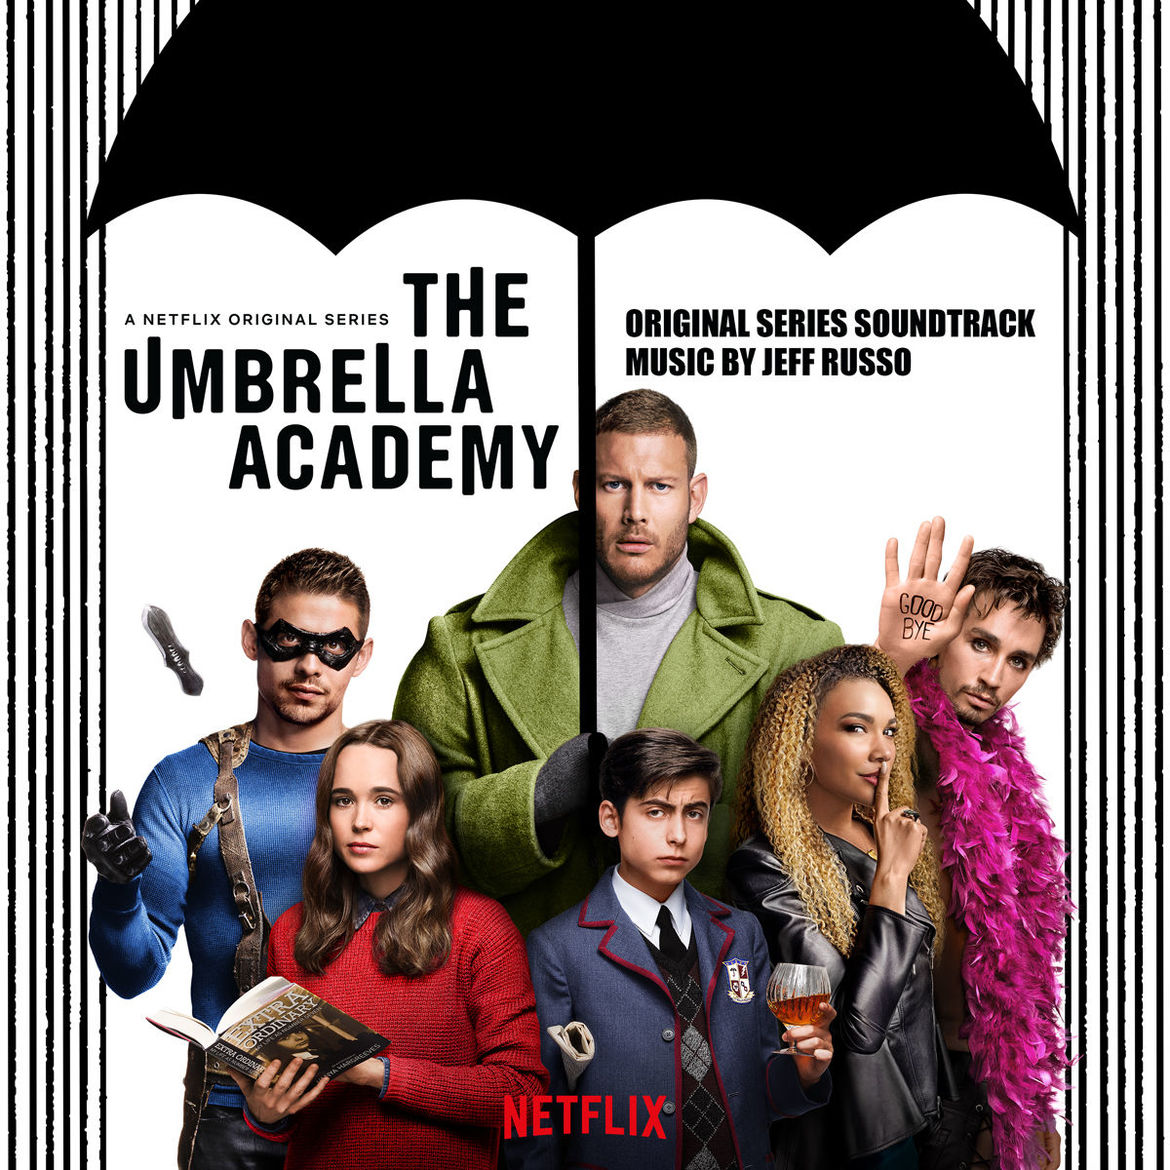 The Umbrella Academy soundtrack album cover